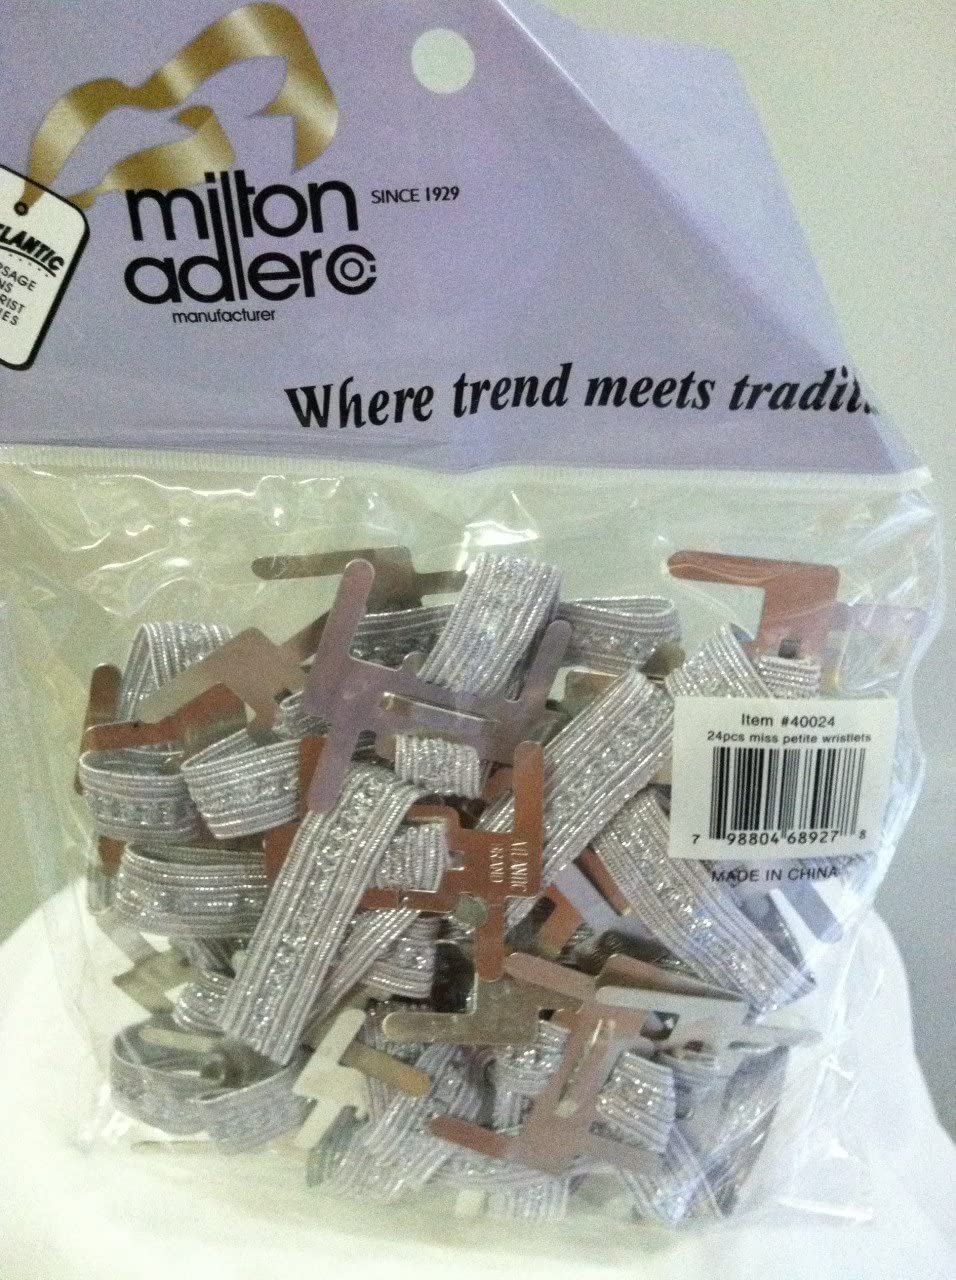 or Wedding by Milton Adler Package of 24 Dance Wrist Corsage Elastic Bands Make Wrist Corsages for Prom